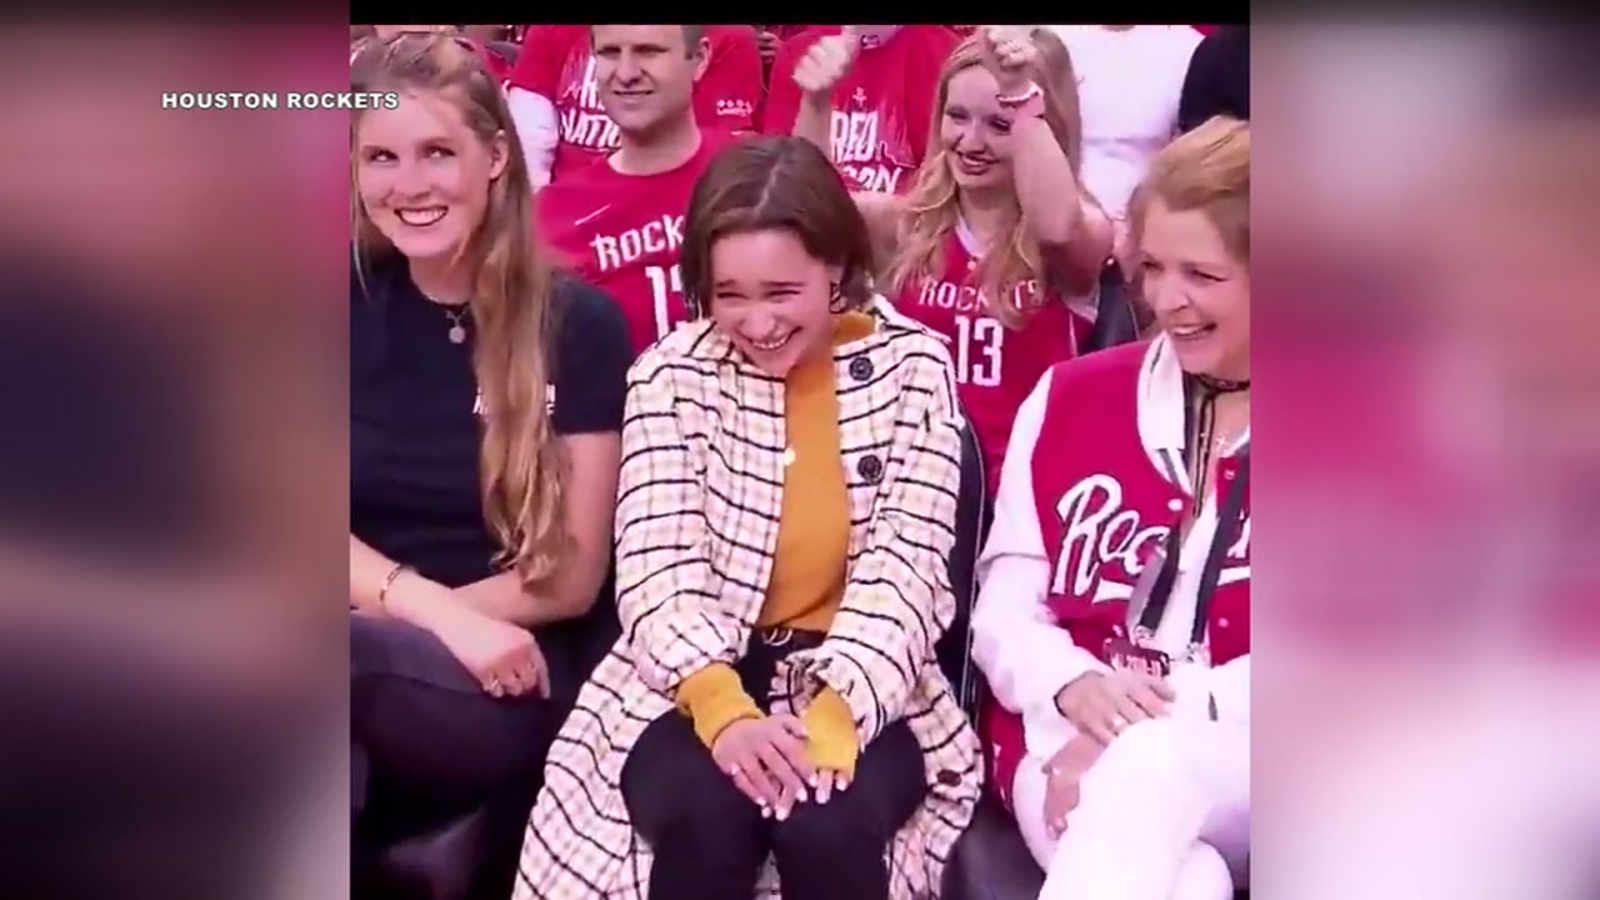 Emilia Clarke Attends First Ever Basketball Game At Toyota